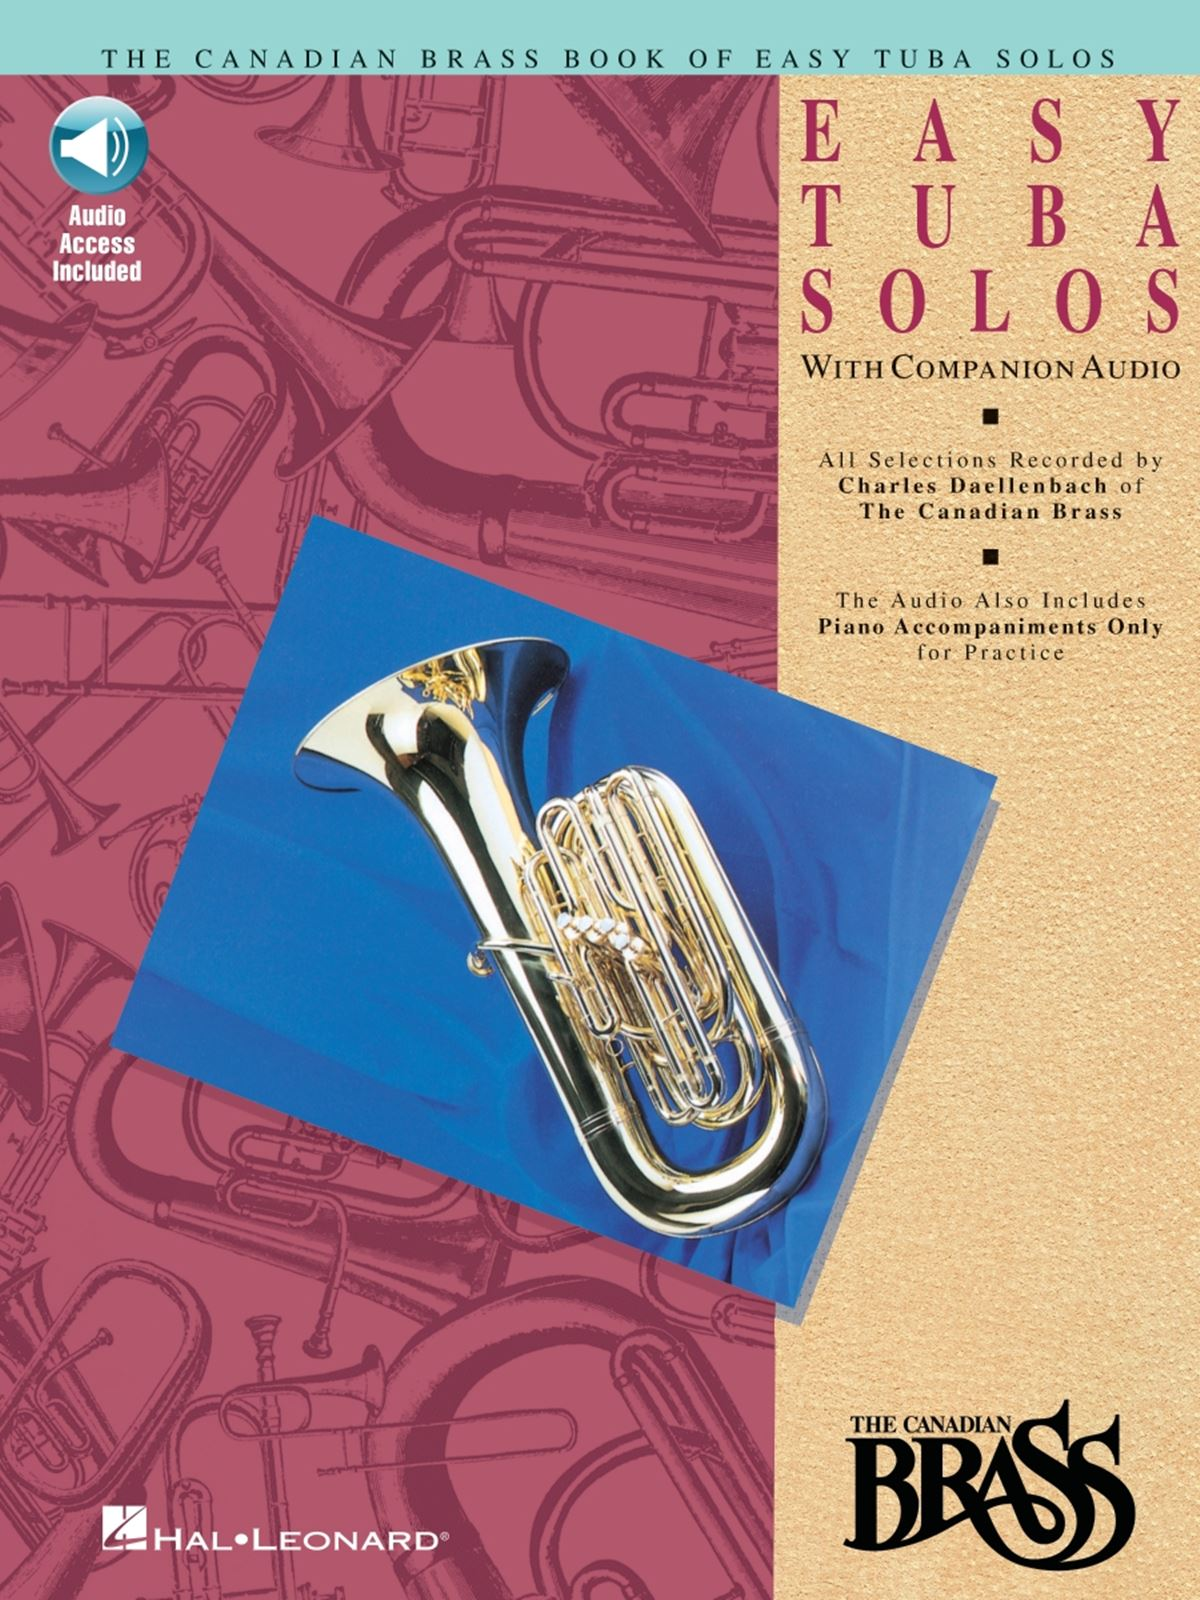 The Canadian Brass: Canadian Brass Book Of Easy Tuba Solos: Tuba Solo: